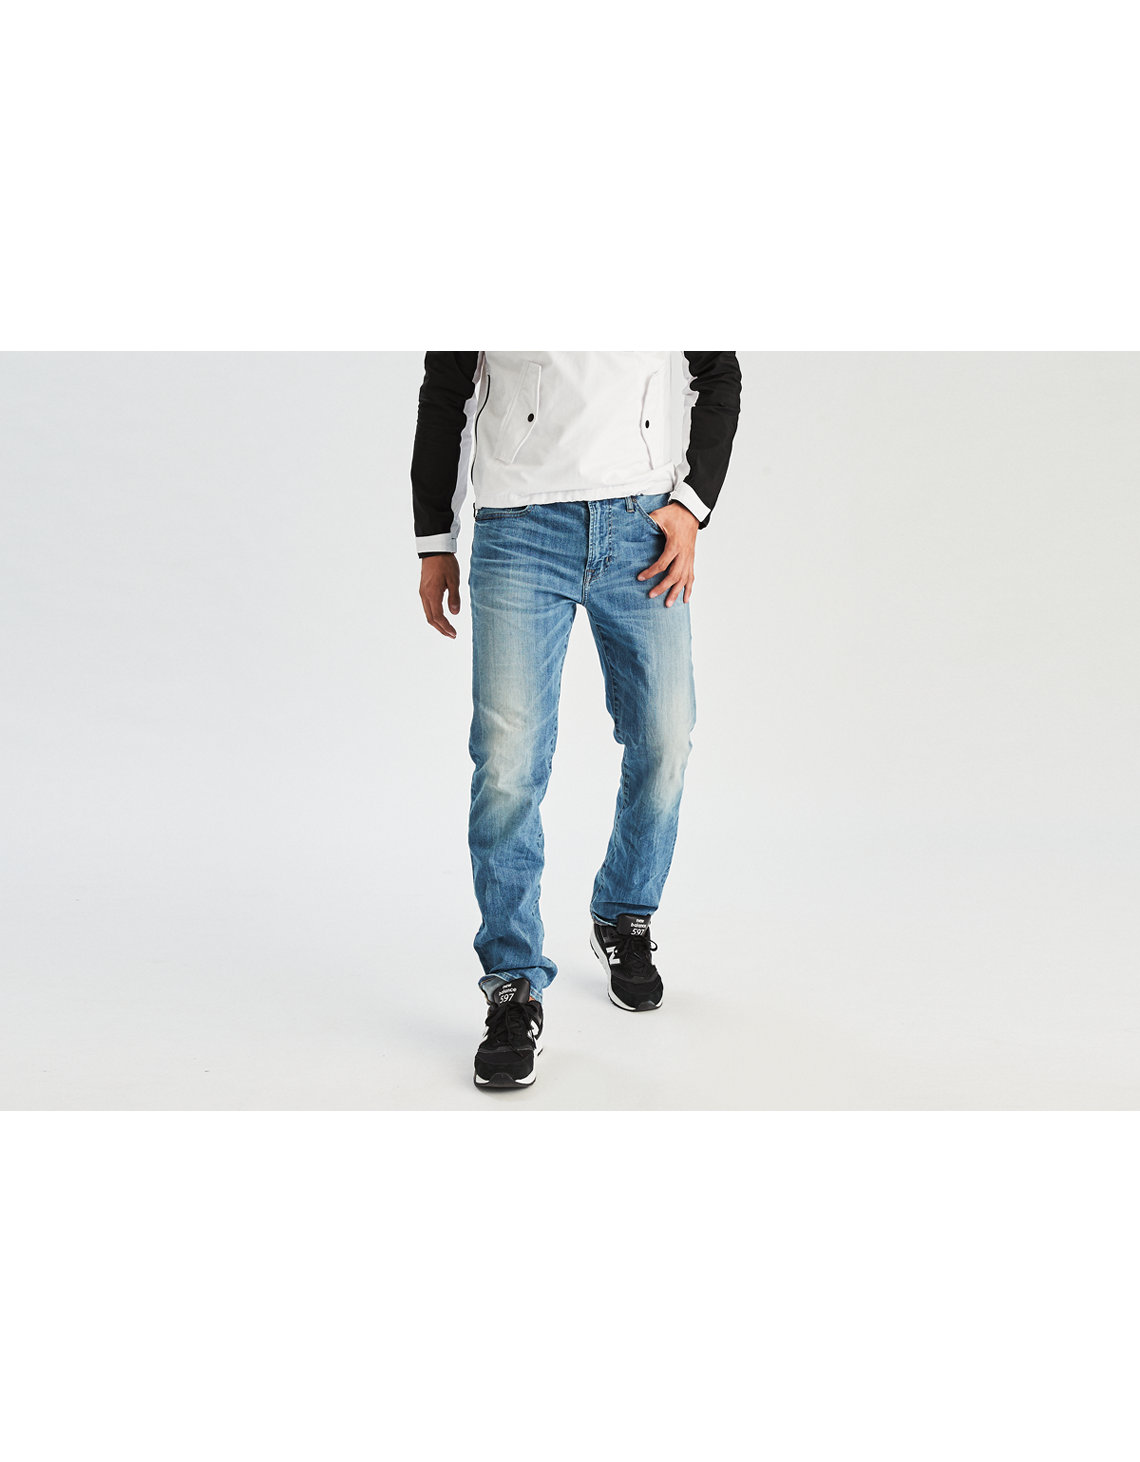 AE 360 Extreme Flex Relaxed Straight Jean. Placeholder image. Product Image